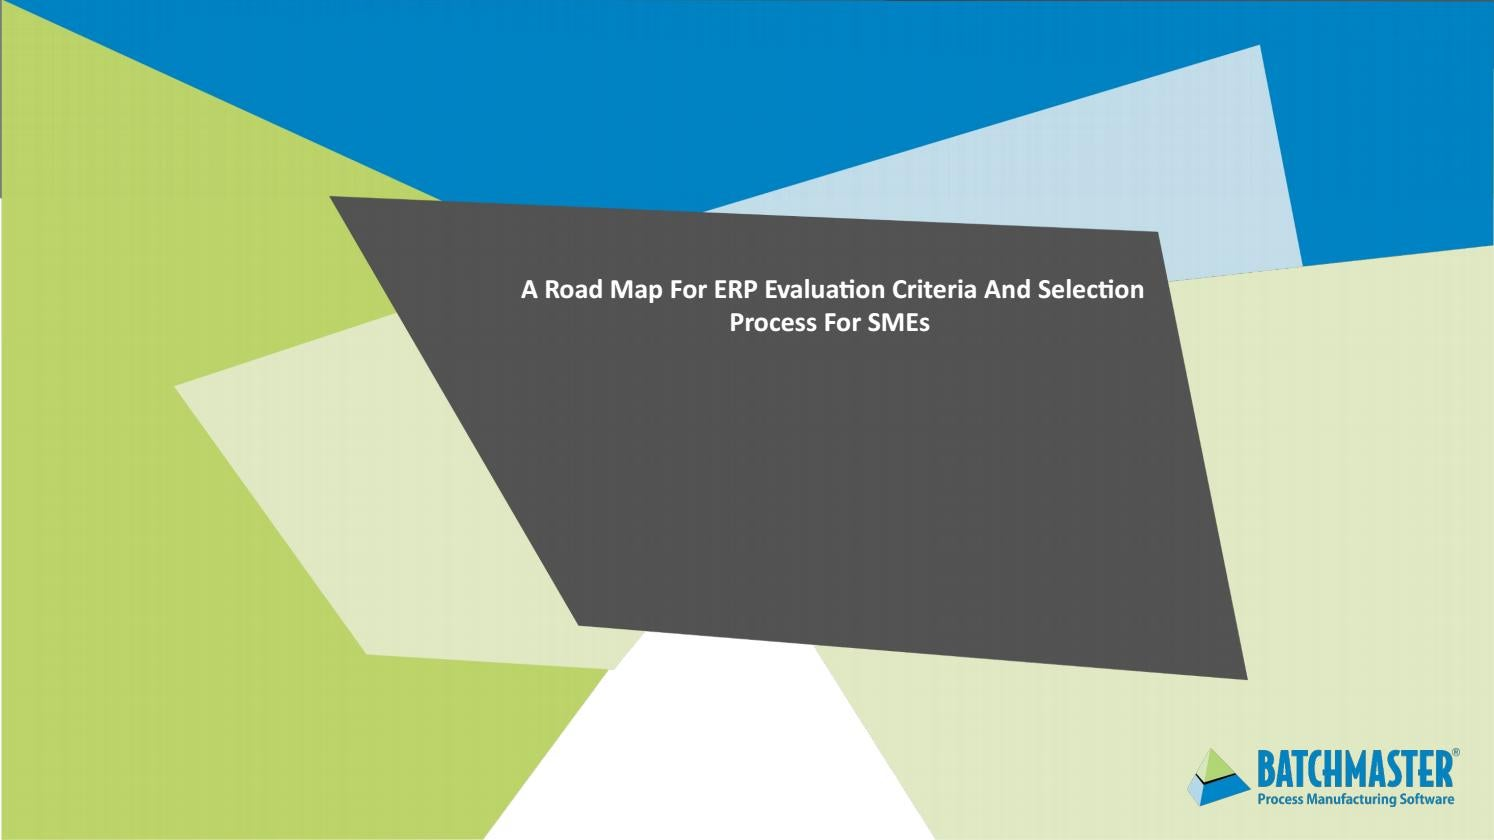 Road Map For Erp Evaluation Criteria And Selection By Batchmaster